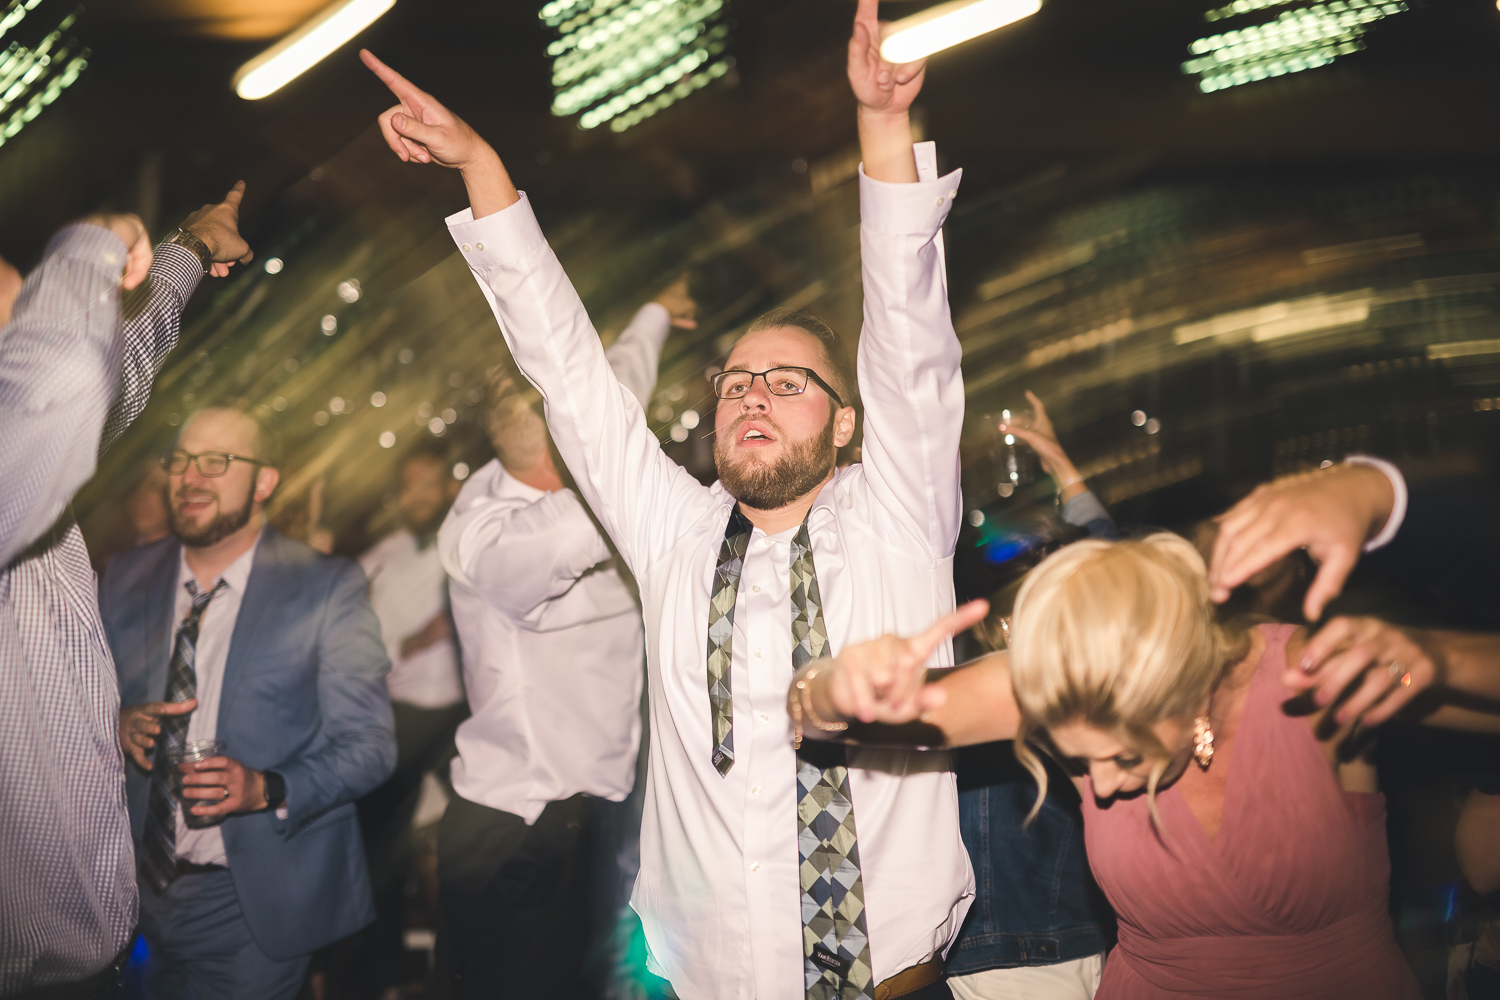 Friends dancing at reception